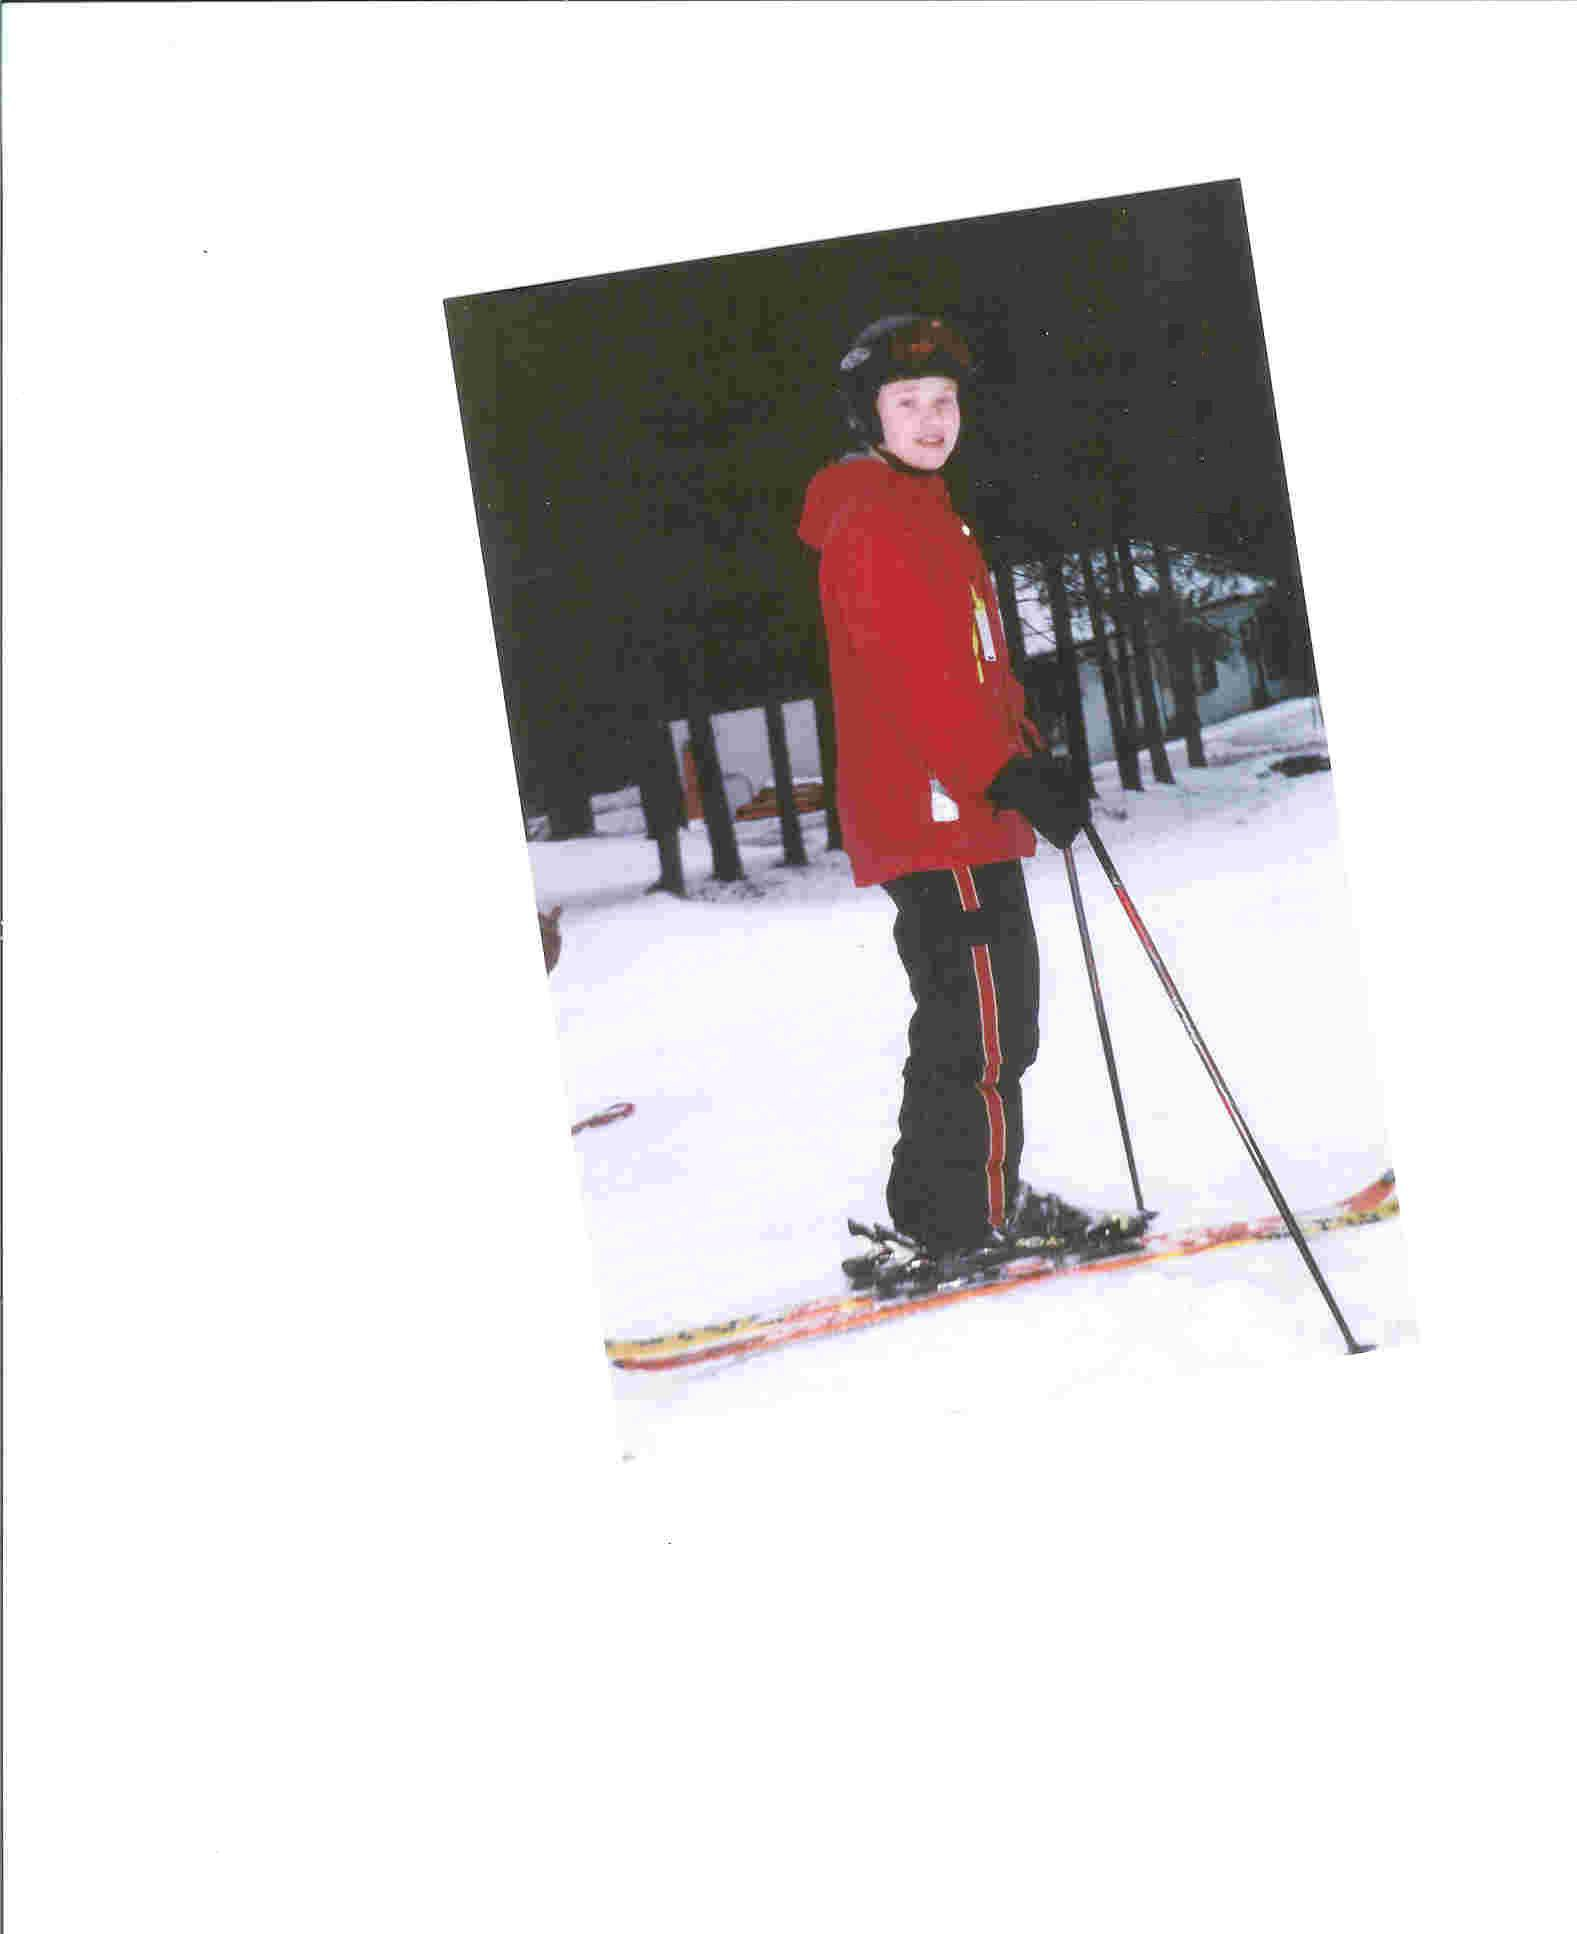 Me last year on skis